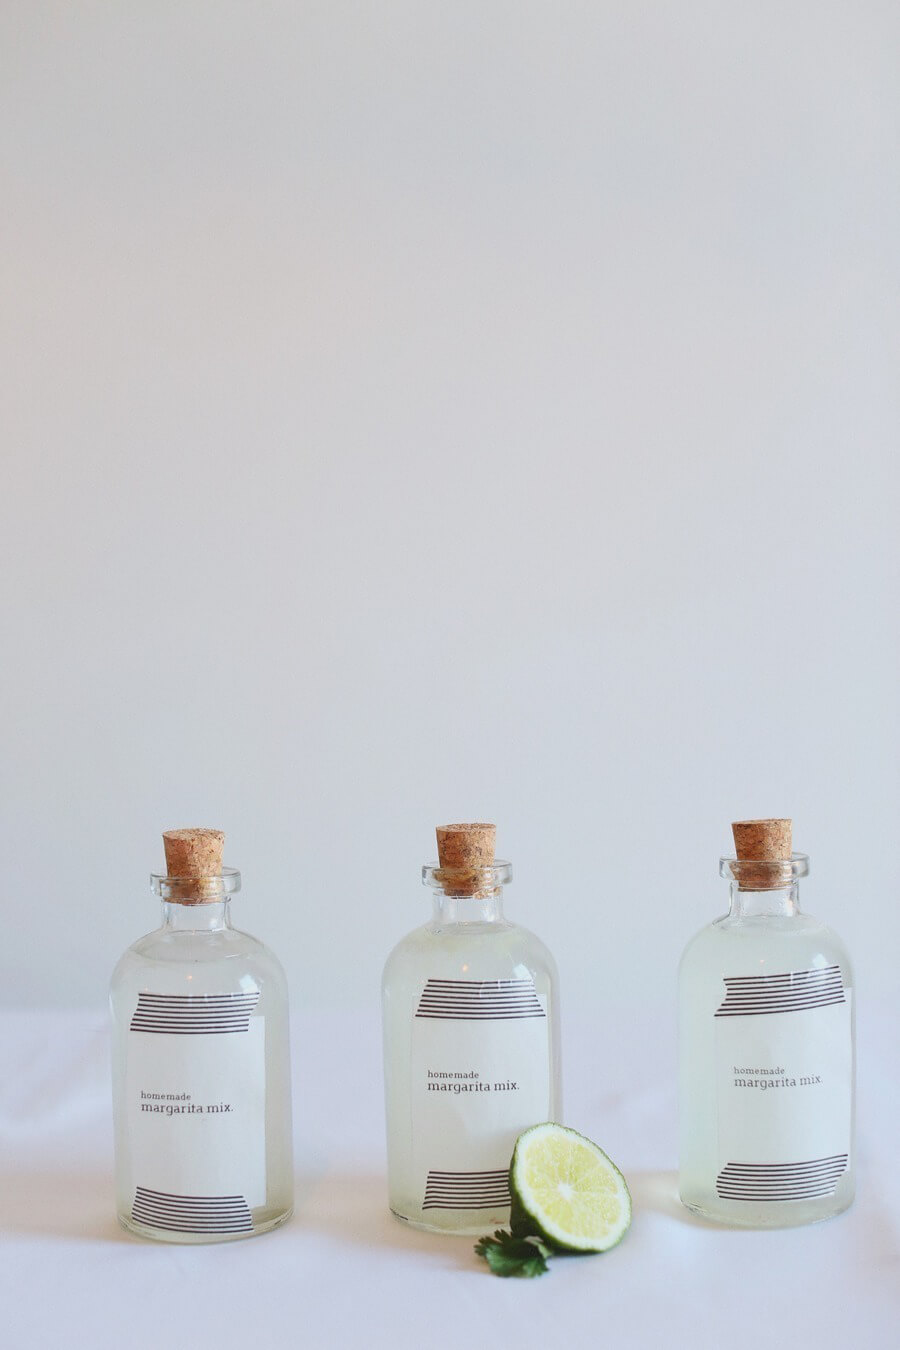 12 Clear Glass 8 Oz. Apothecary  Bottles with Cork Tops